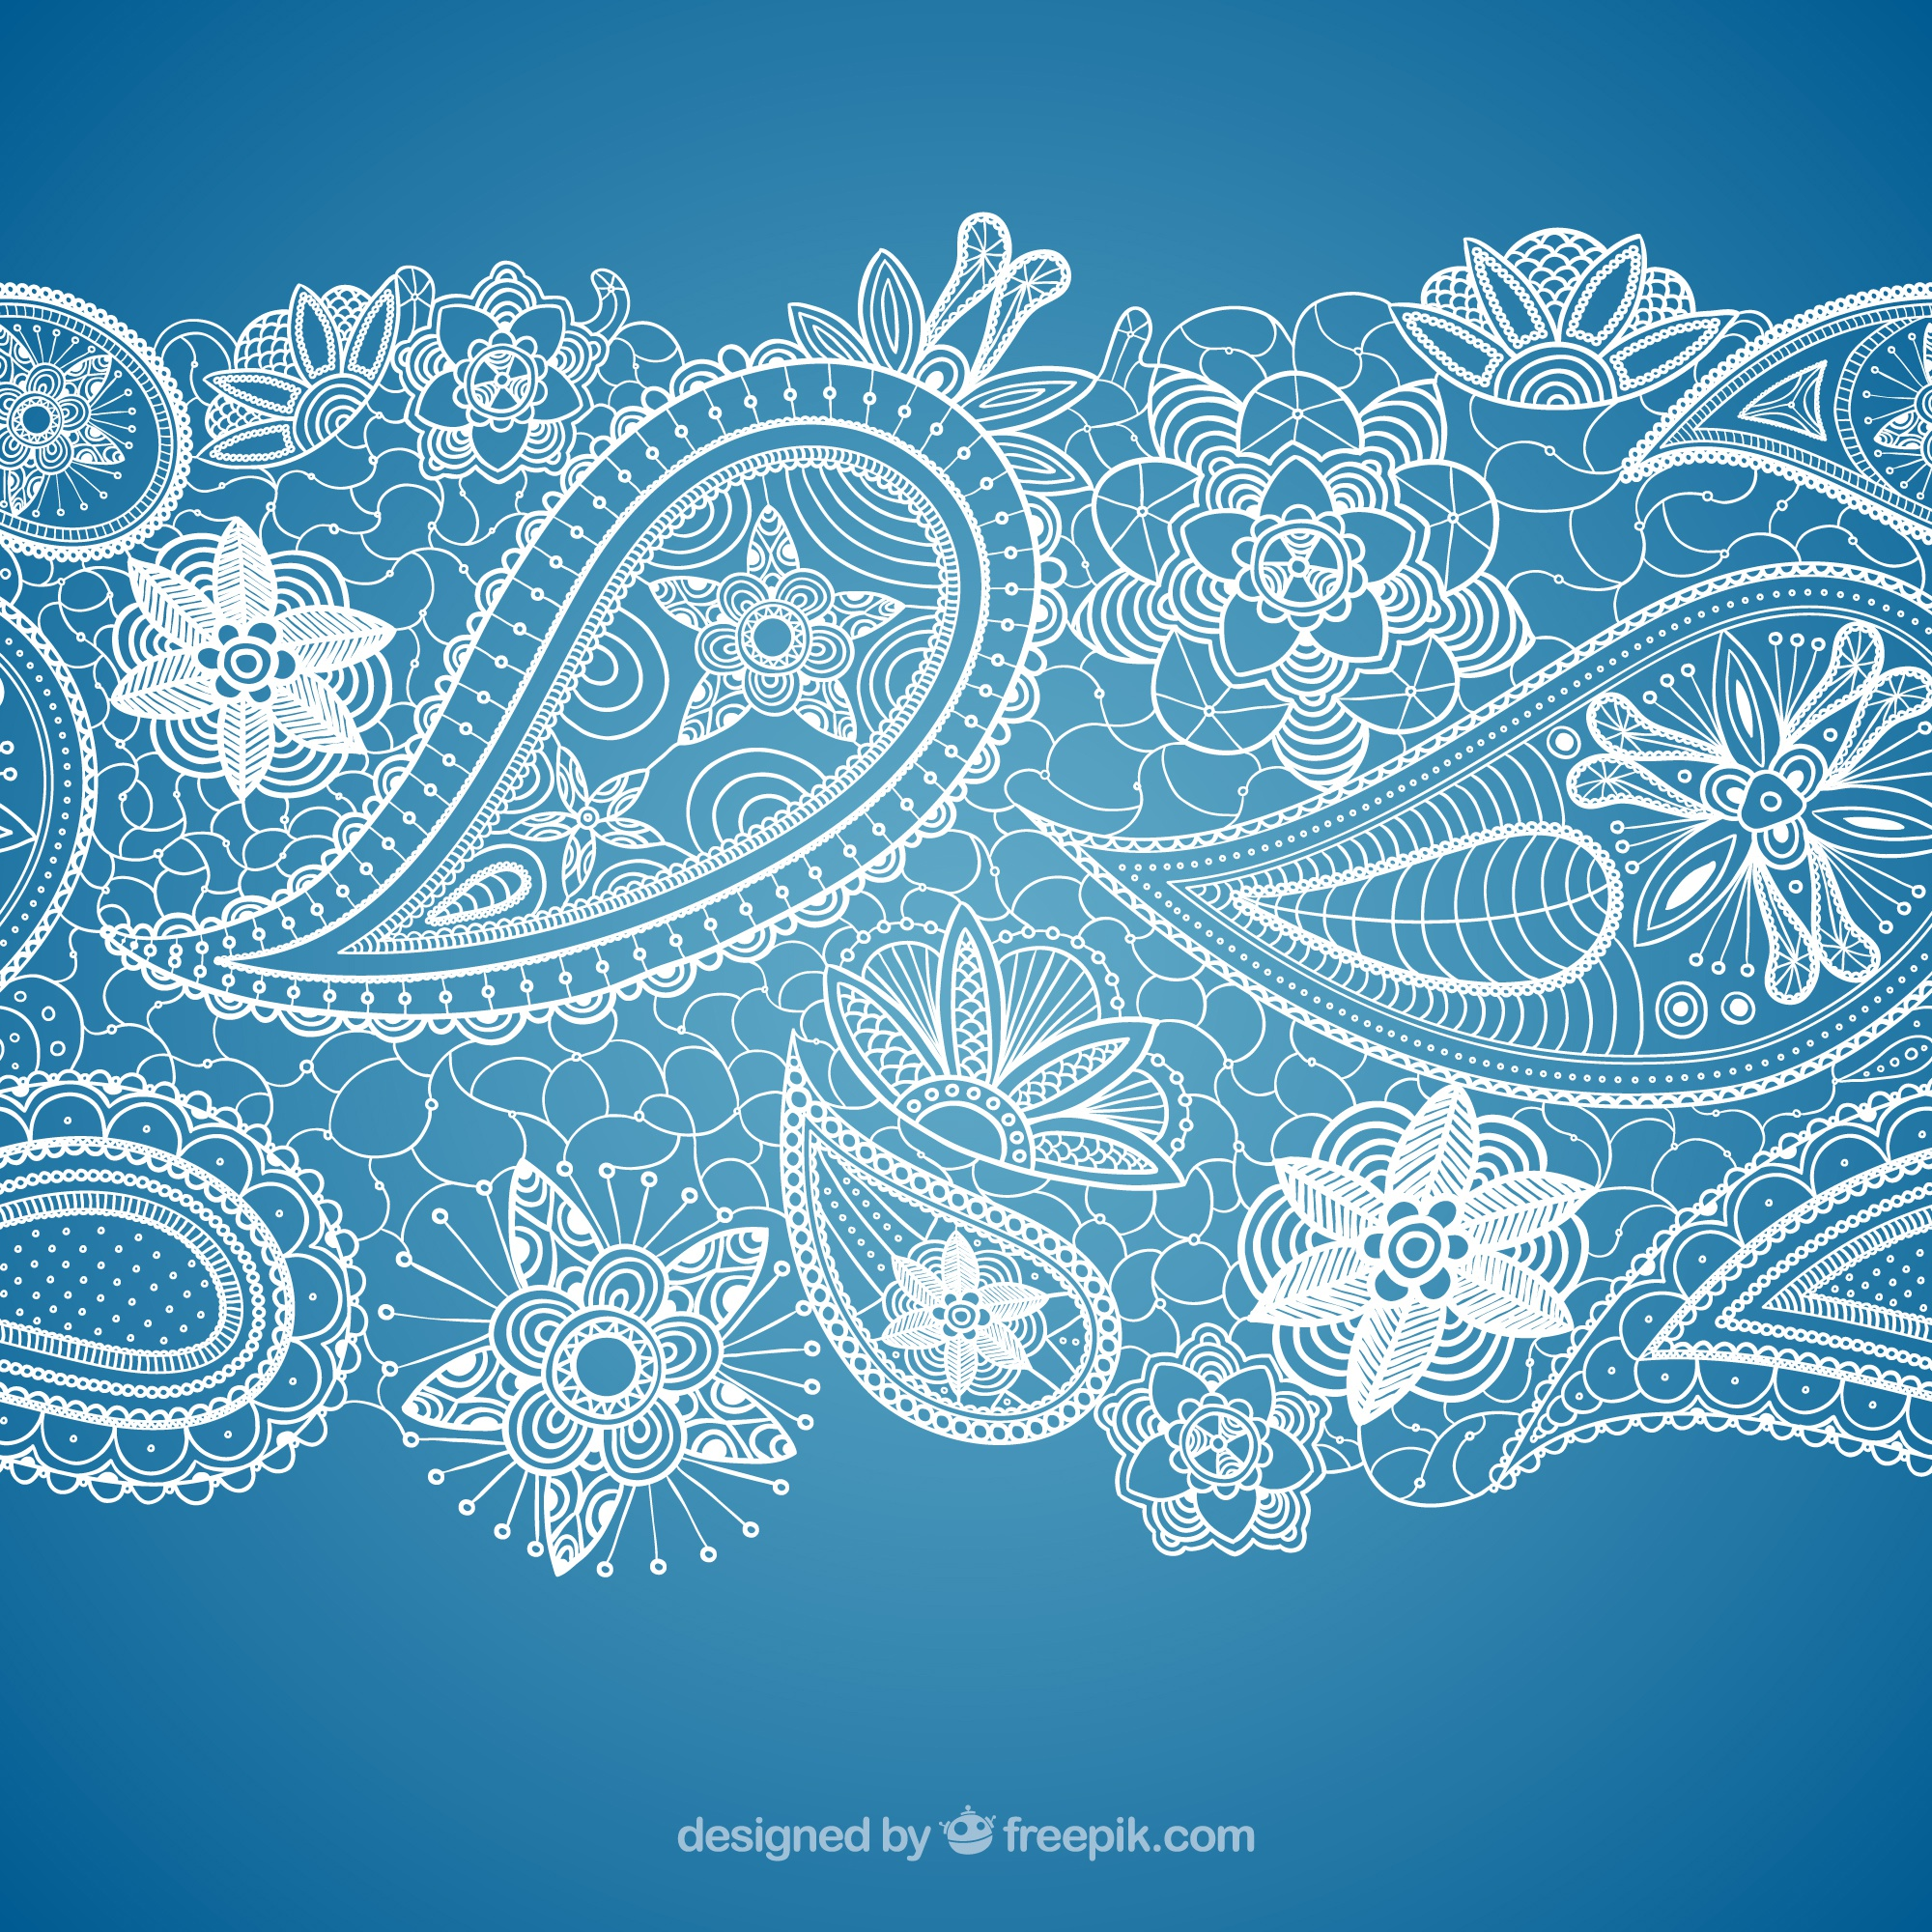 Paisley lace background